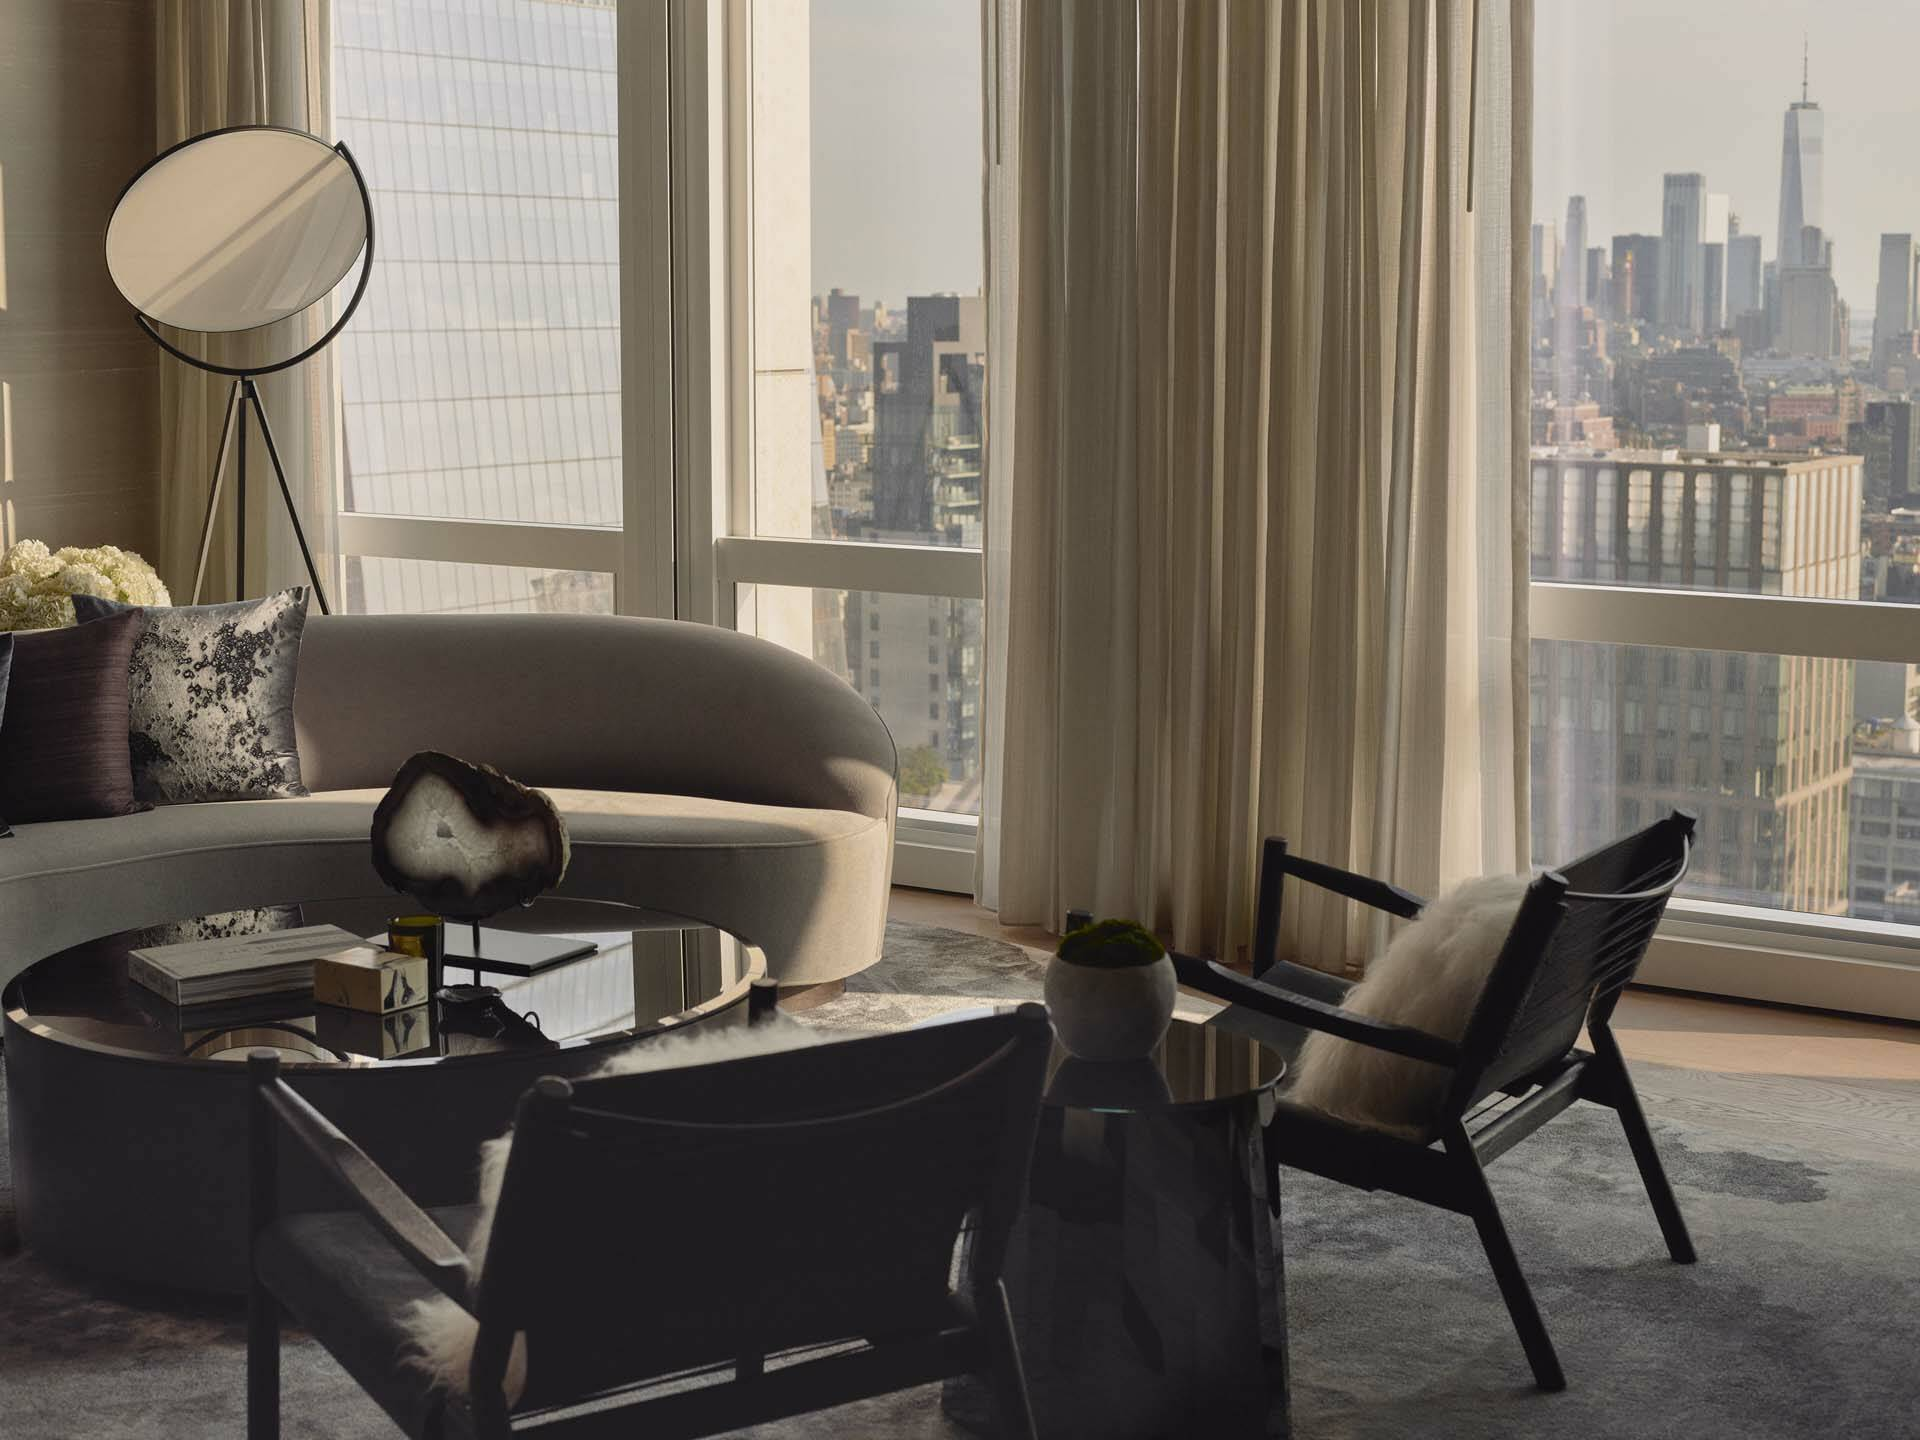 New York Equinox Hudson Yards Suite Living Room Day